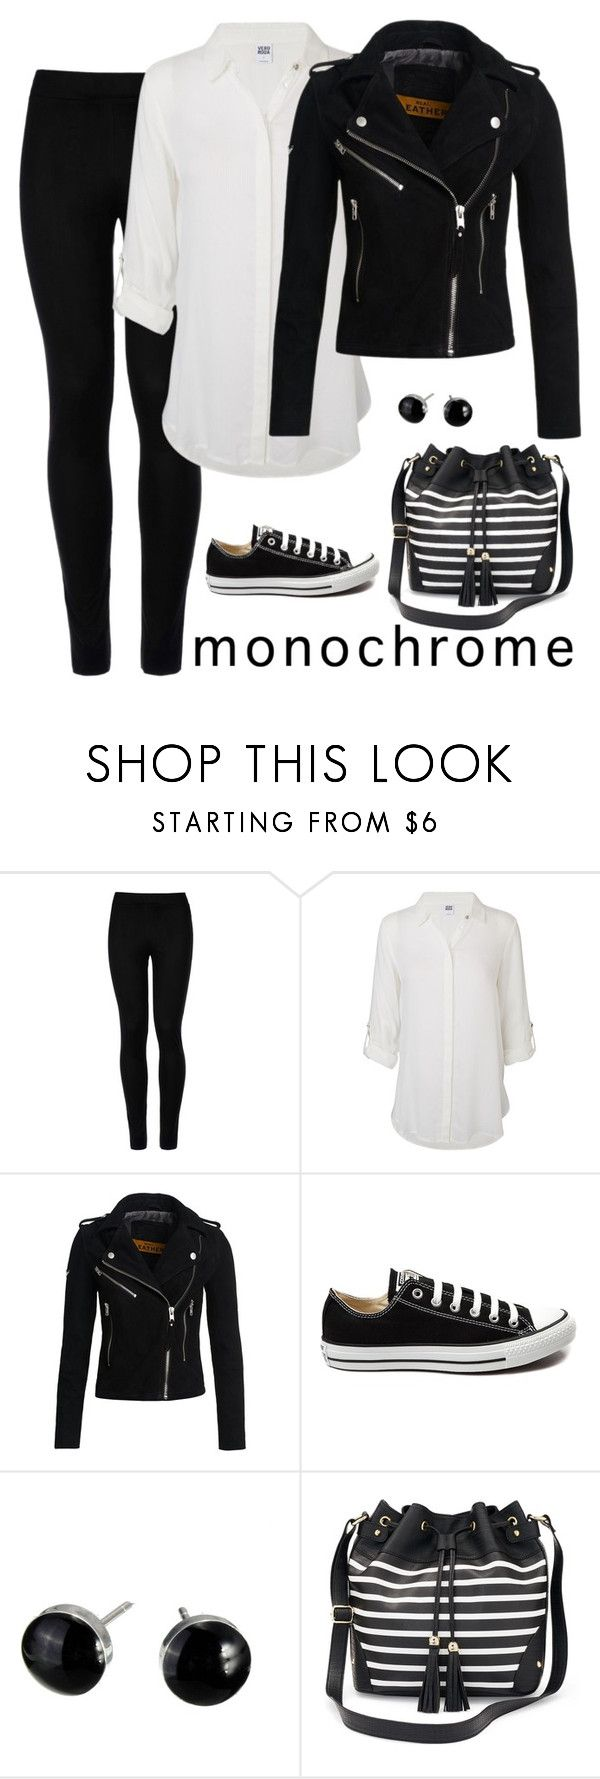 """Monochrome"" by mrseclipse ❤ liked on Polyvore featuring Wolford, Vero Moda, Superdry, Converse, Apt. 9, monochrome and Leggings"